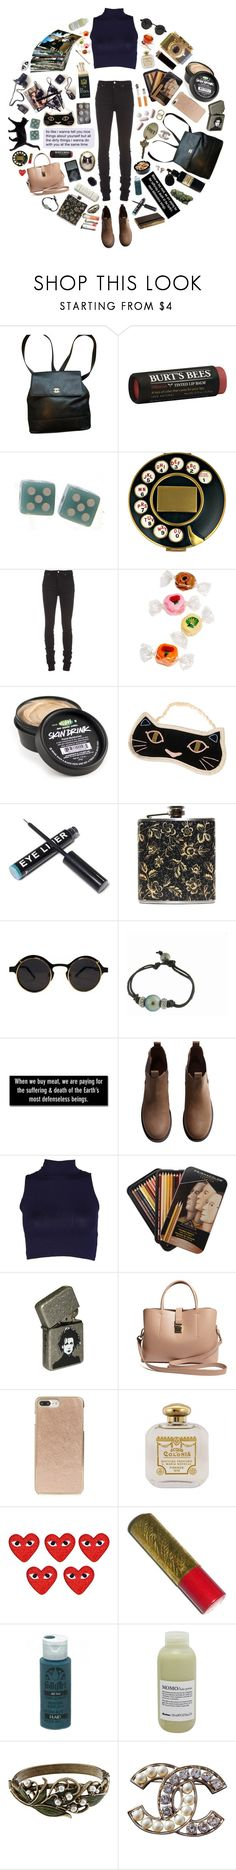 """next tuesday"" by cosmonautical ❤ liked on Polyvore featuring Chanel, Burt's Bees, Salvador Dali, Nudie Jeans Co., Mad et Len, Kala, Moleskine, H&M, Forever 21 and Kate Spade"